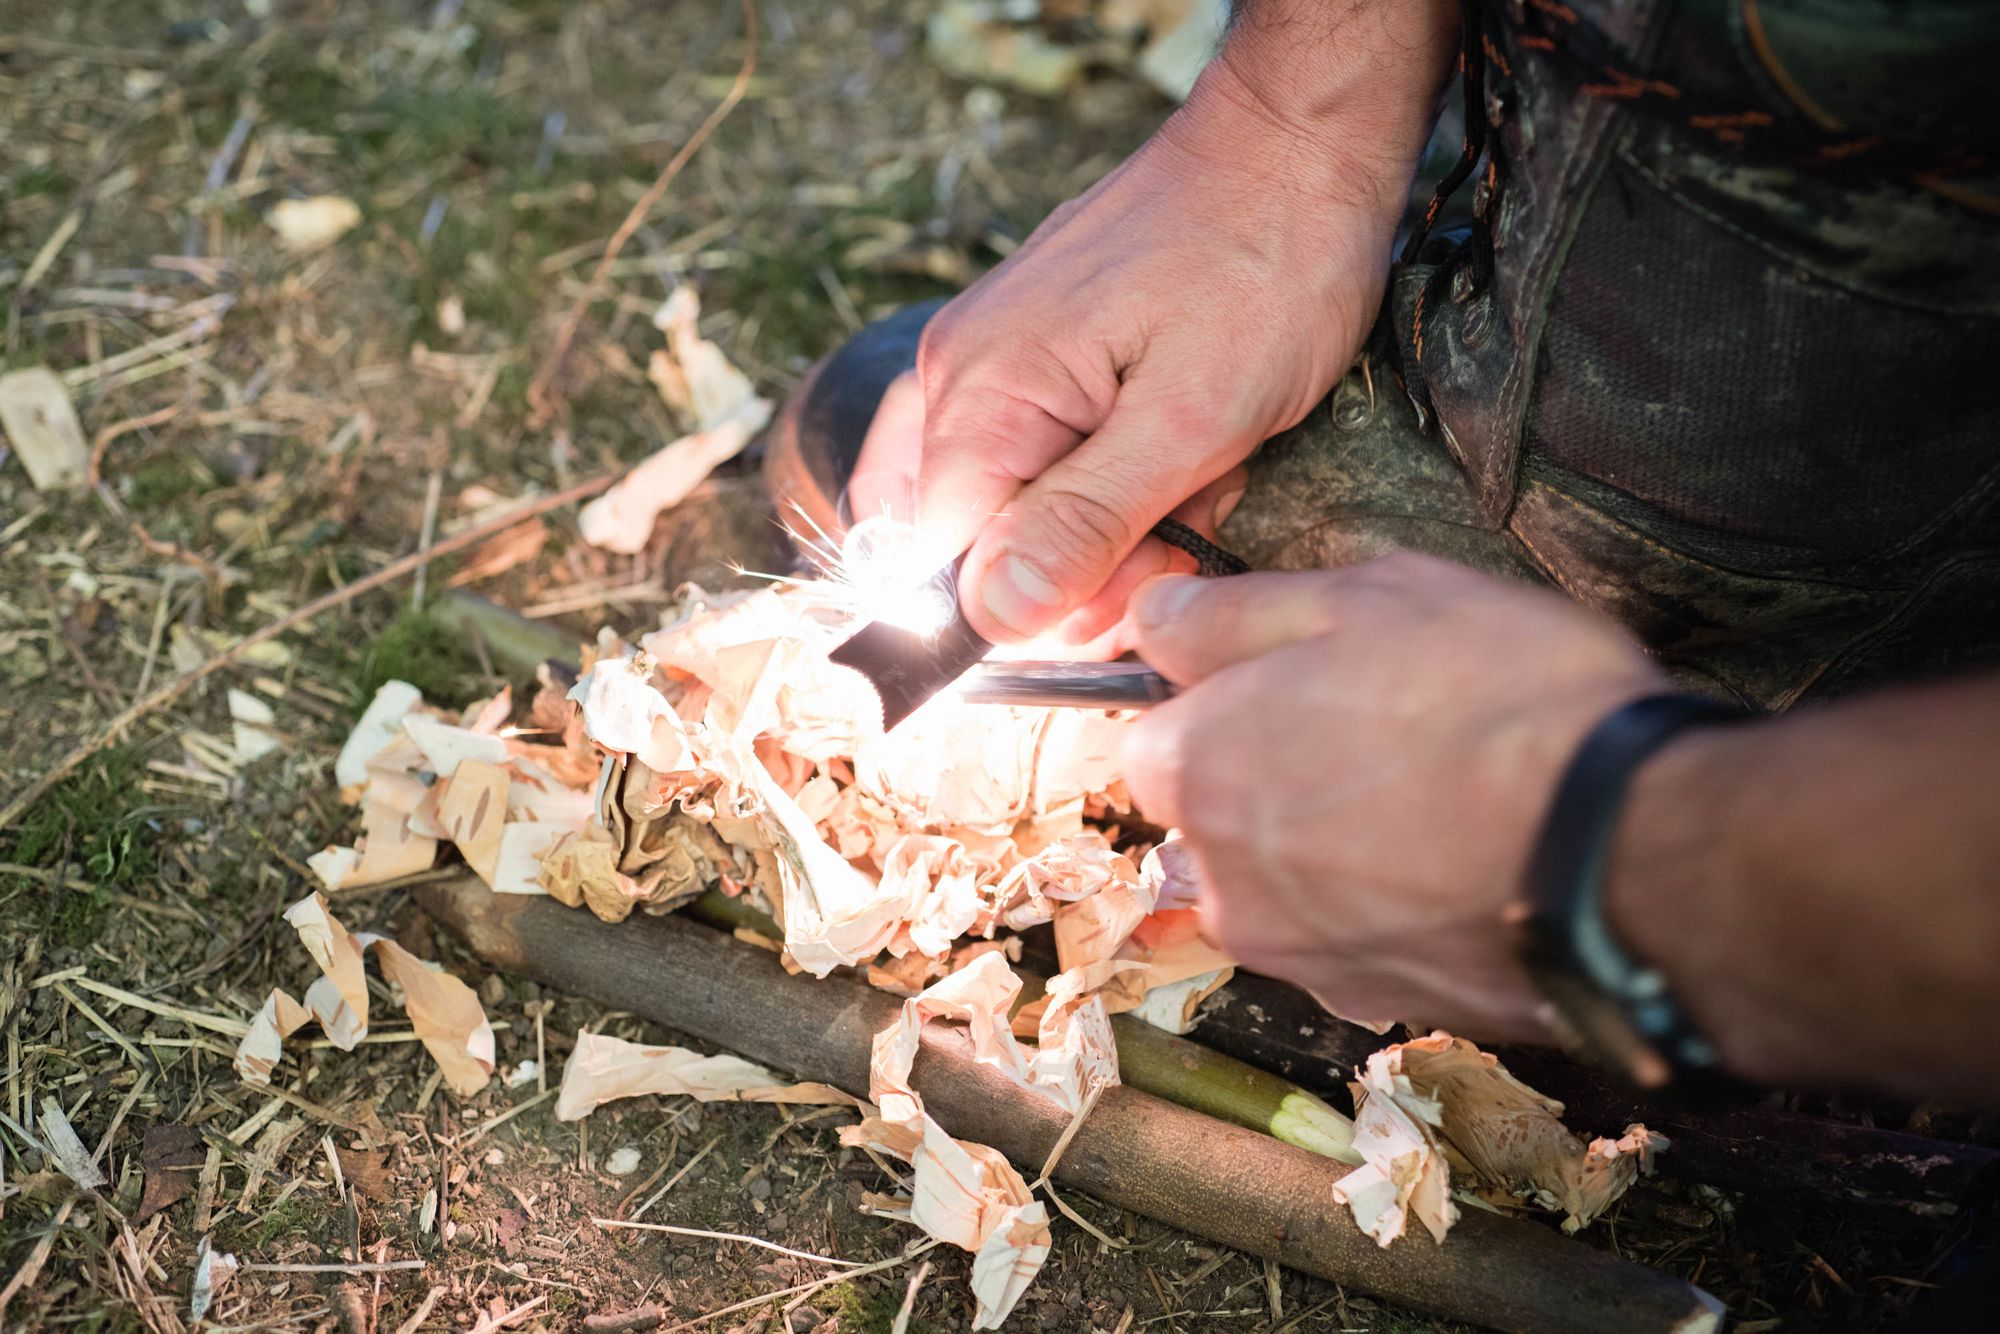 Campfire-friendly campsites in Suffolk - Campfires Allowed